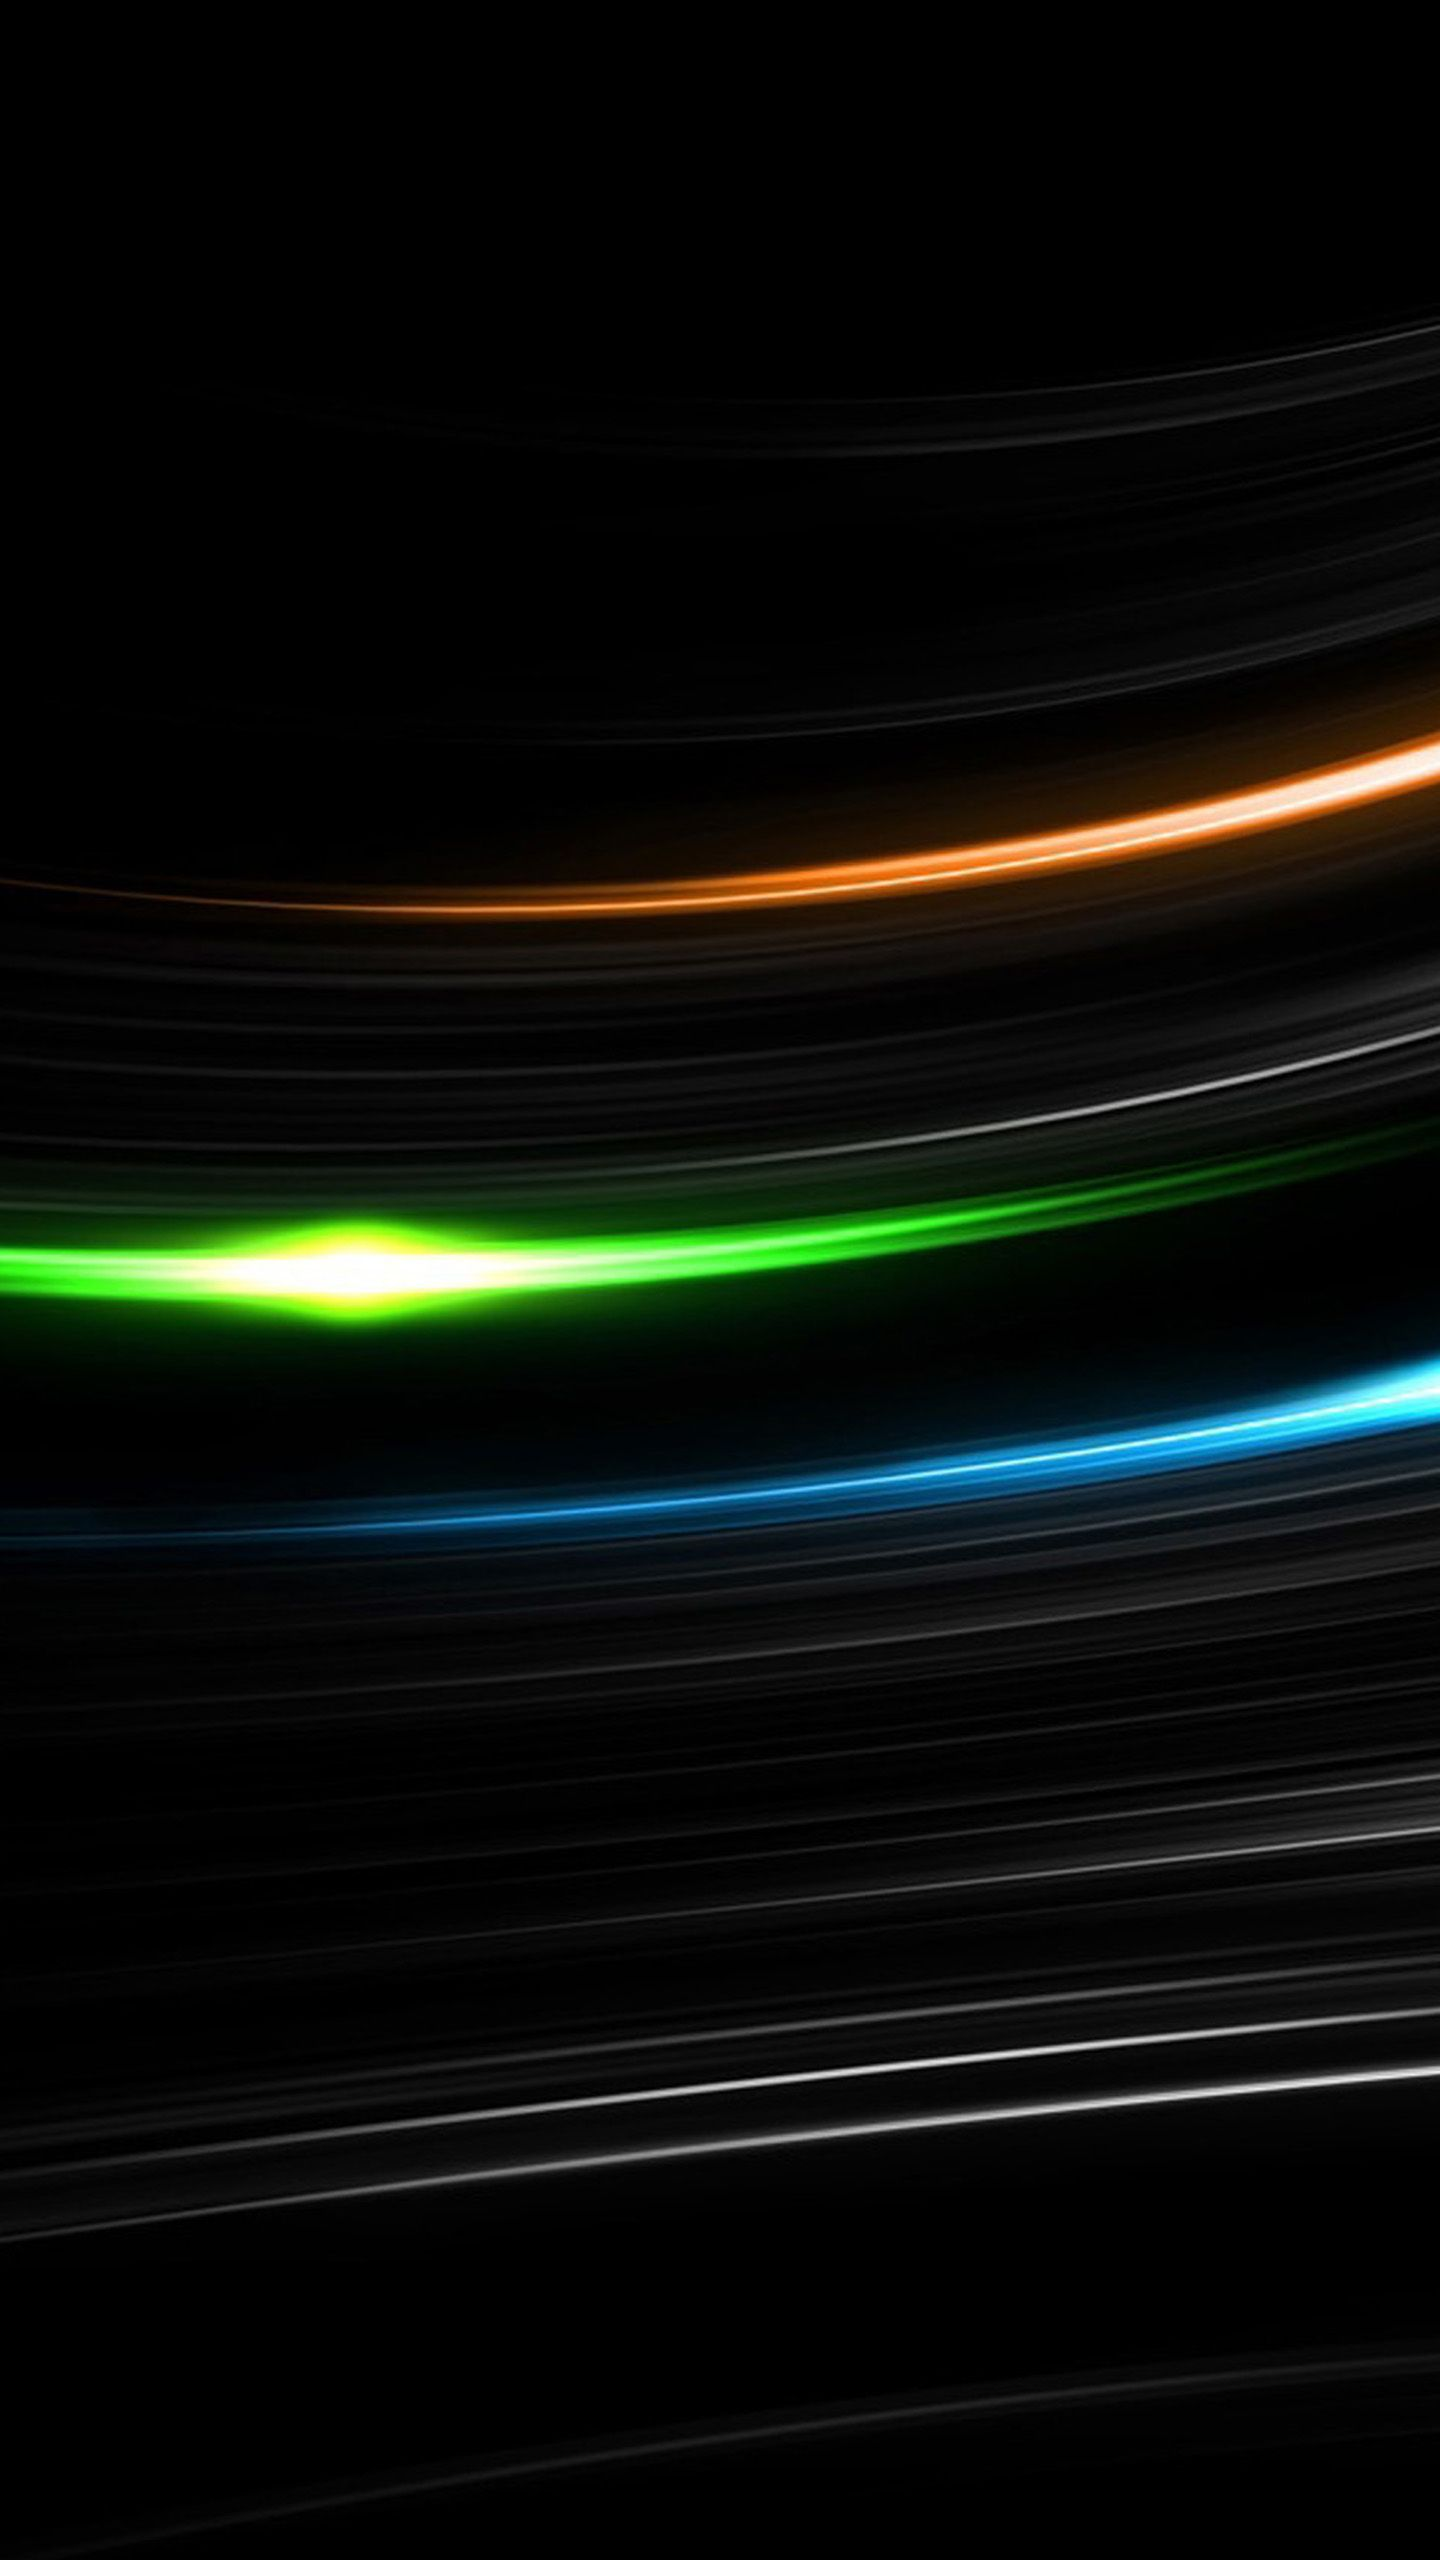 Black Light Wallpaper Abstract D Wallpapers For Free